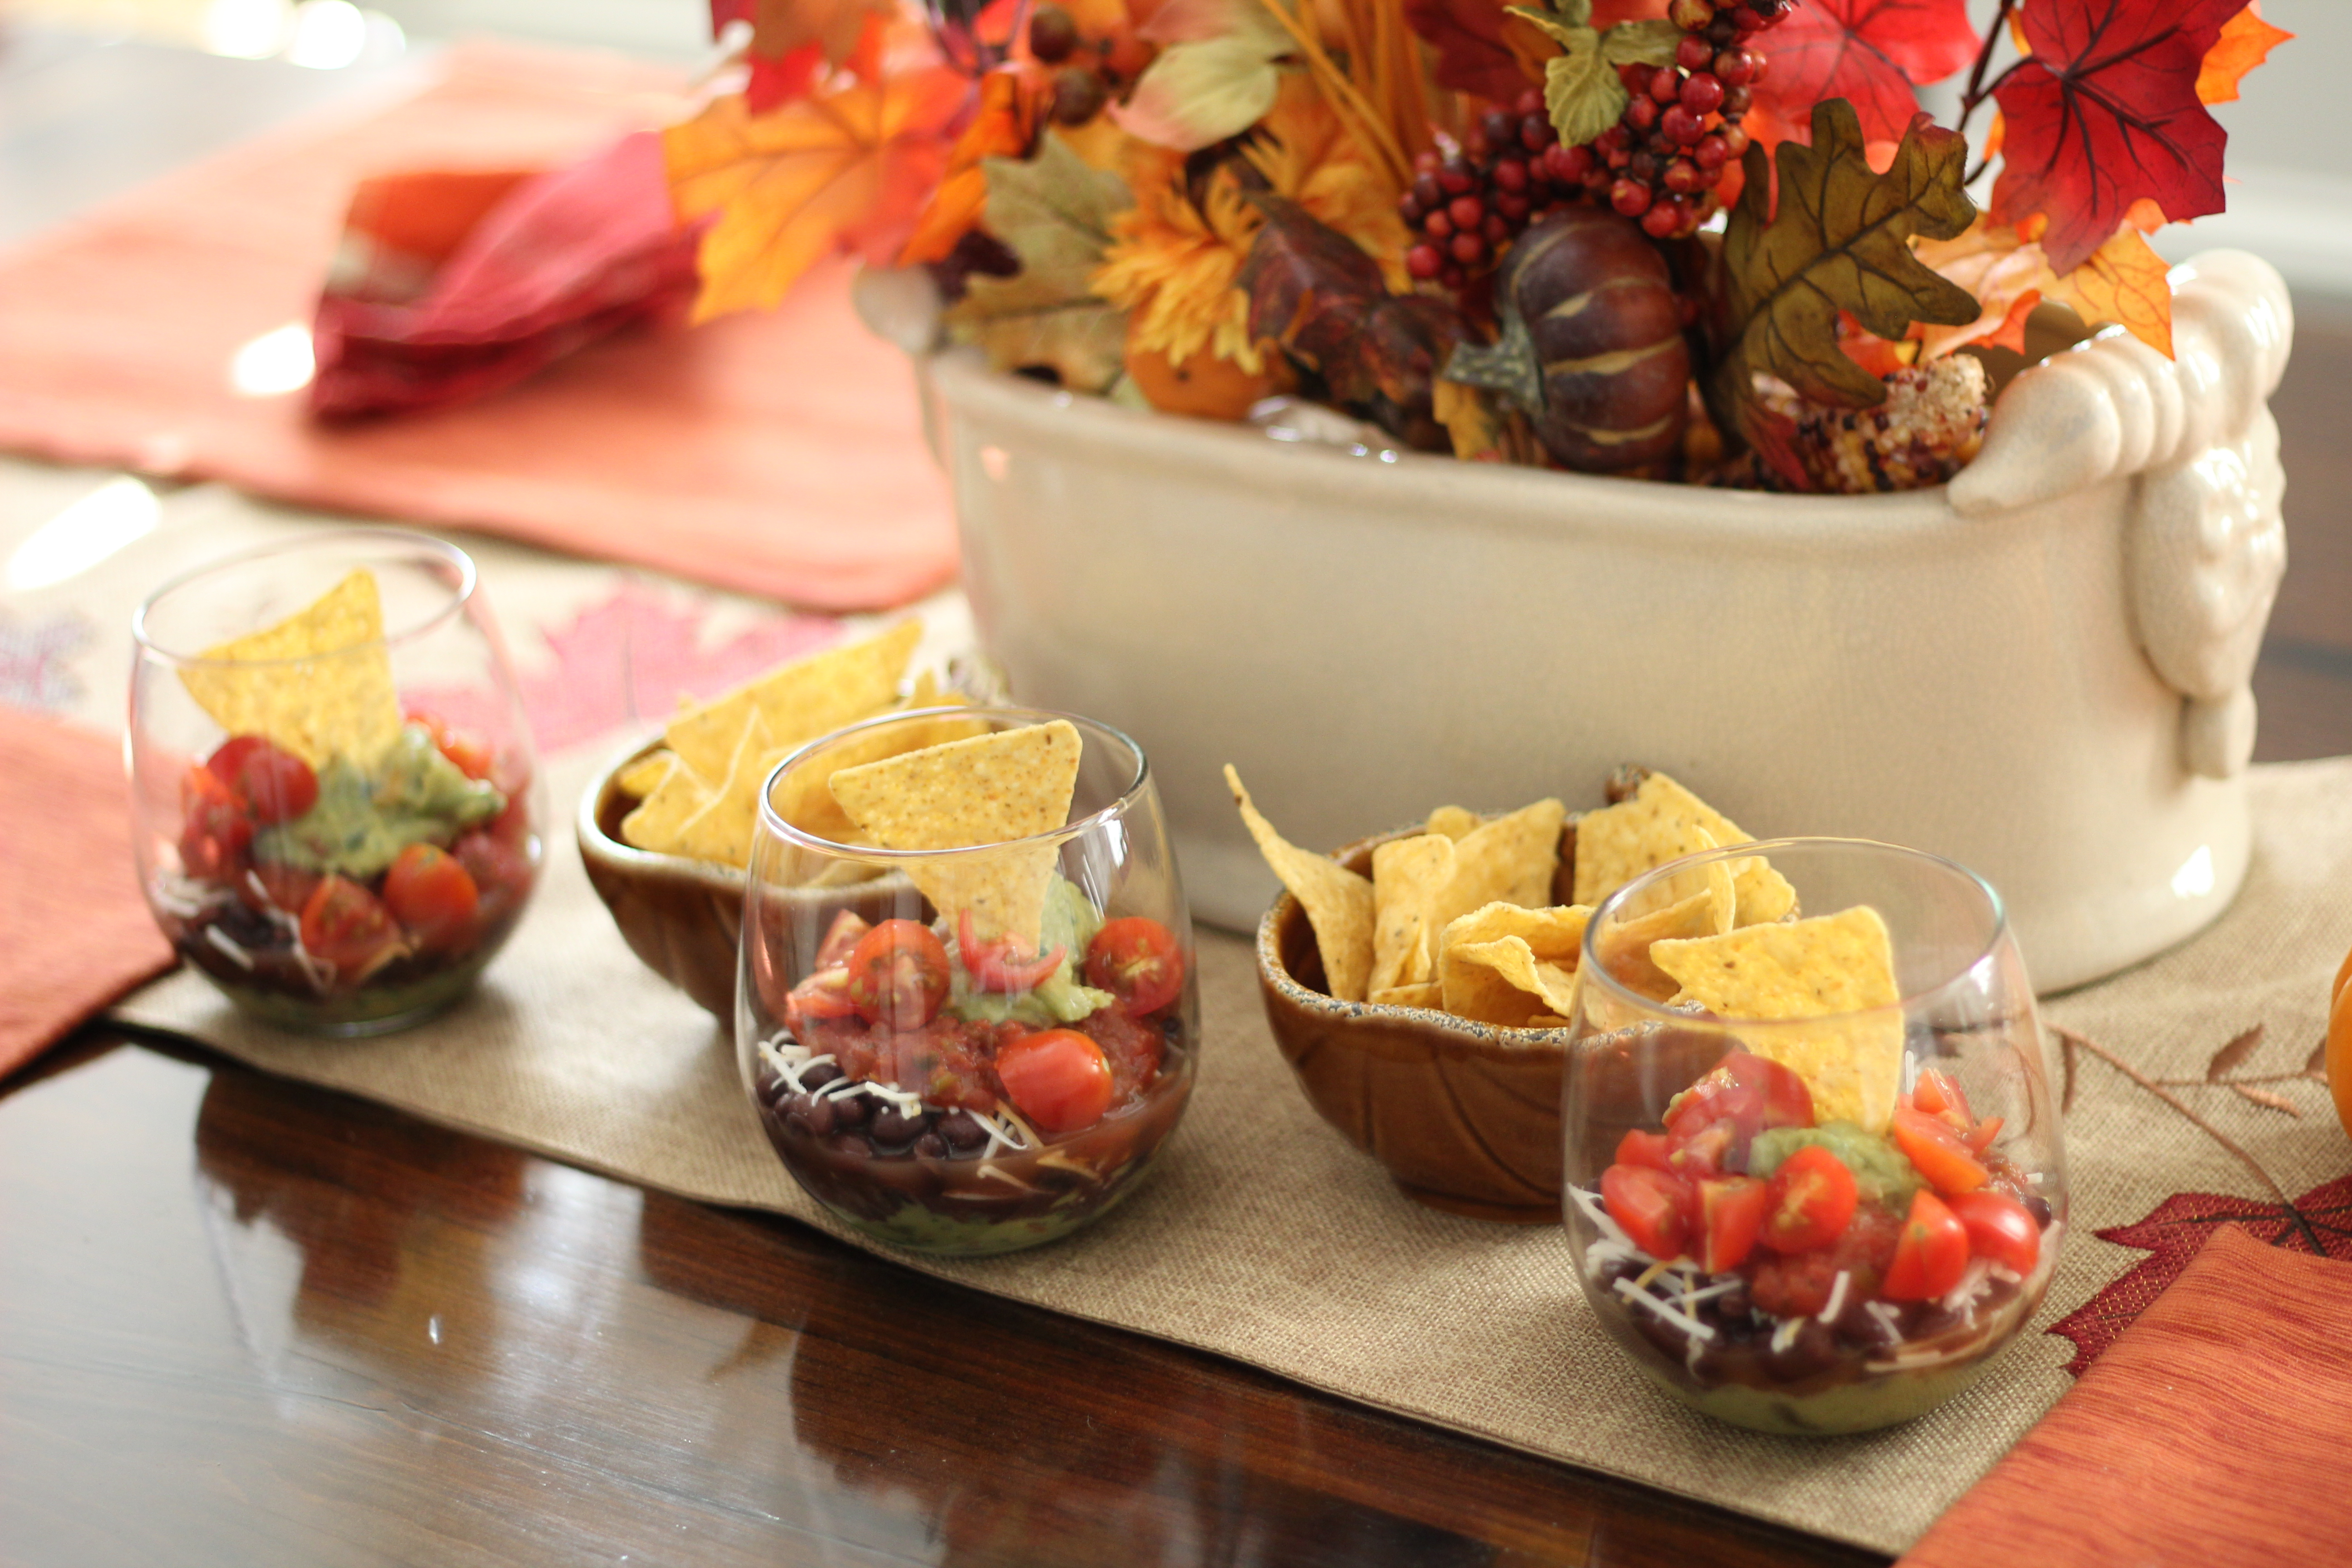 6 Layer Guacamole Dip with GOODFOODS